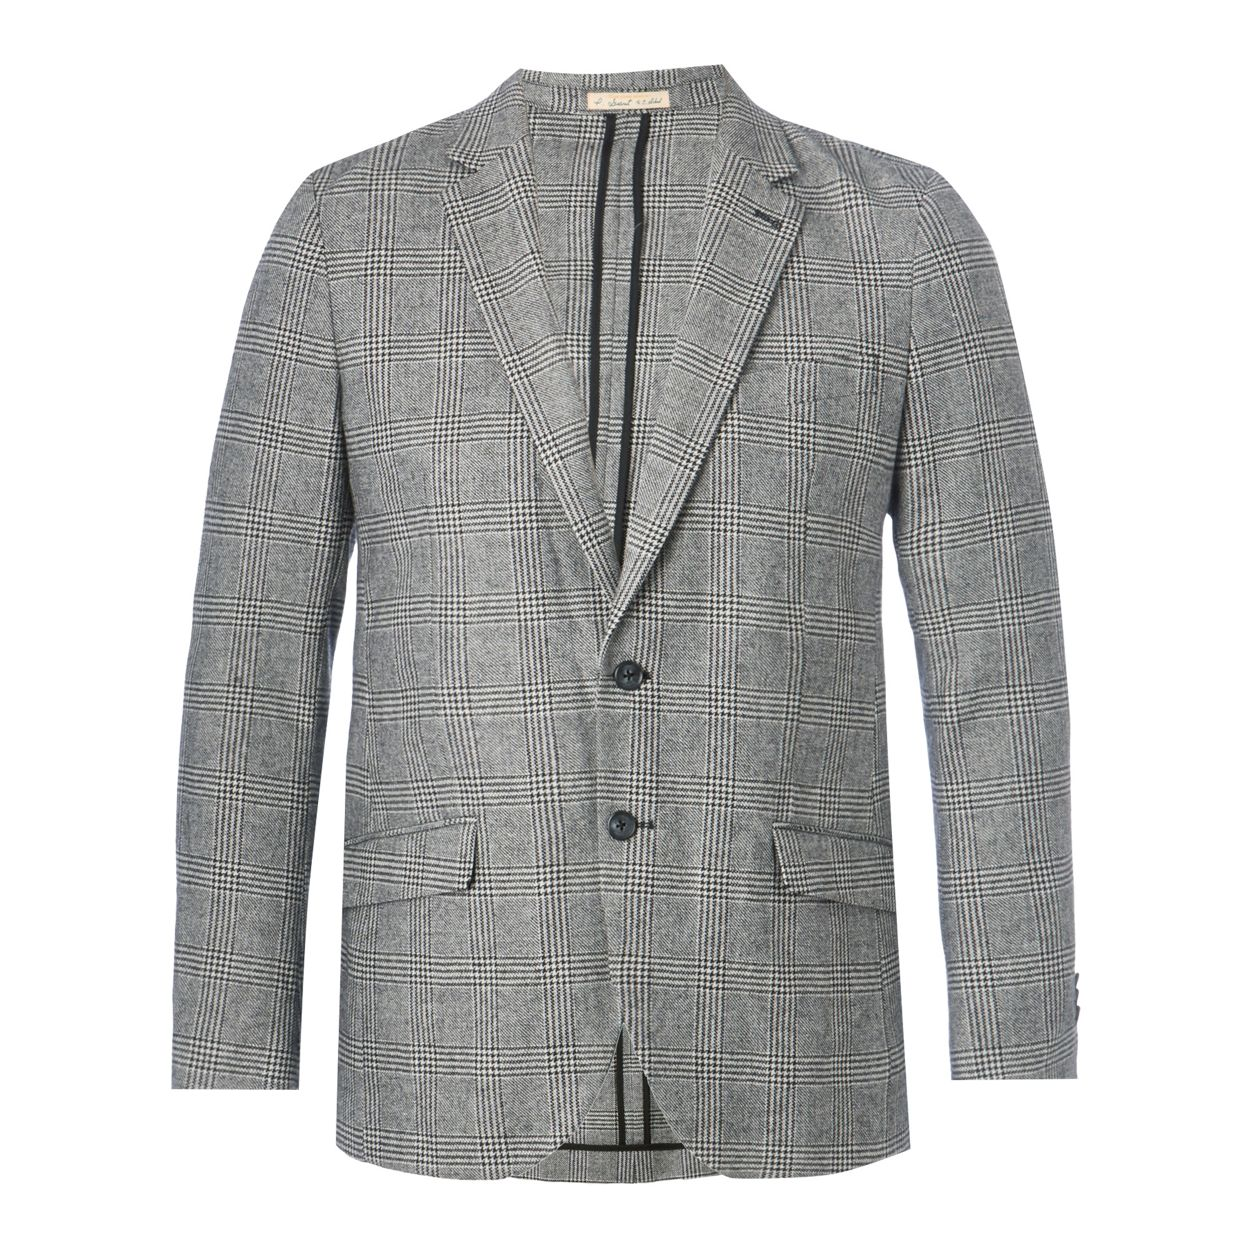 Hammond & Co. by Patrick Grant Grey Prince of Wales checked wool blend jacket